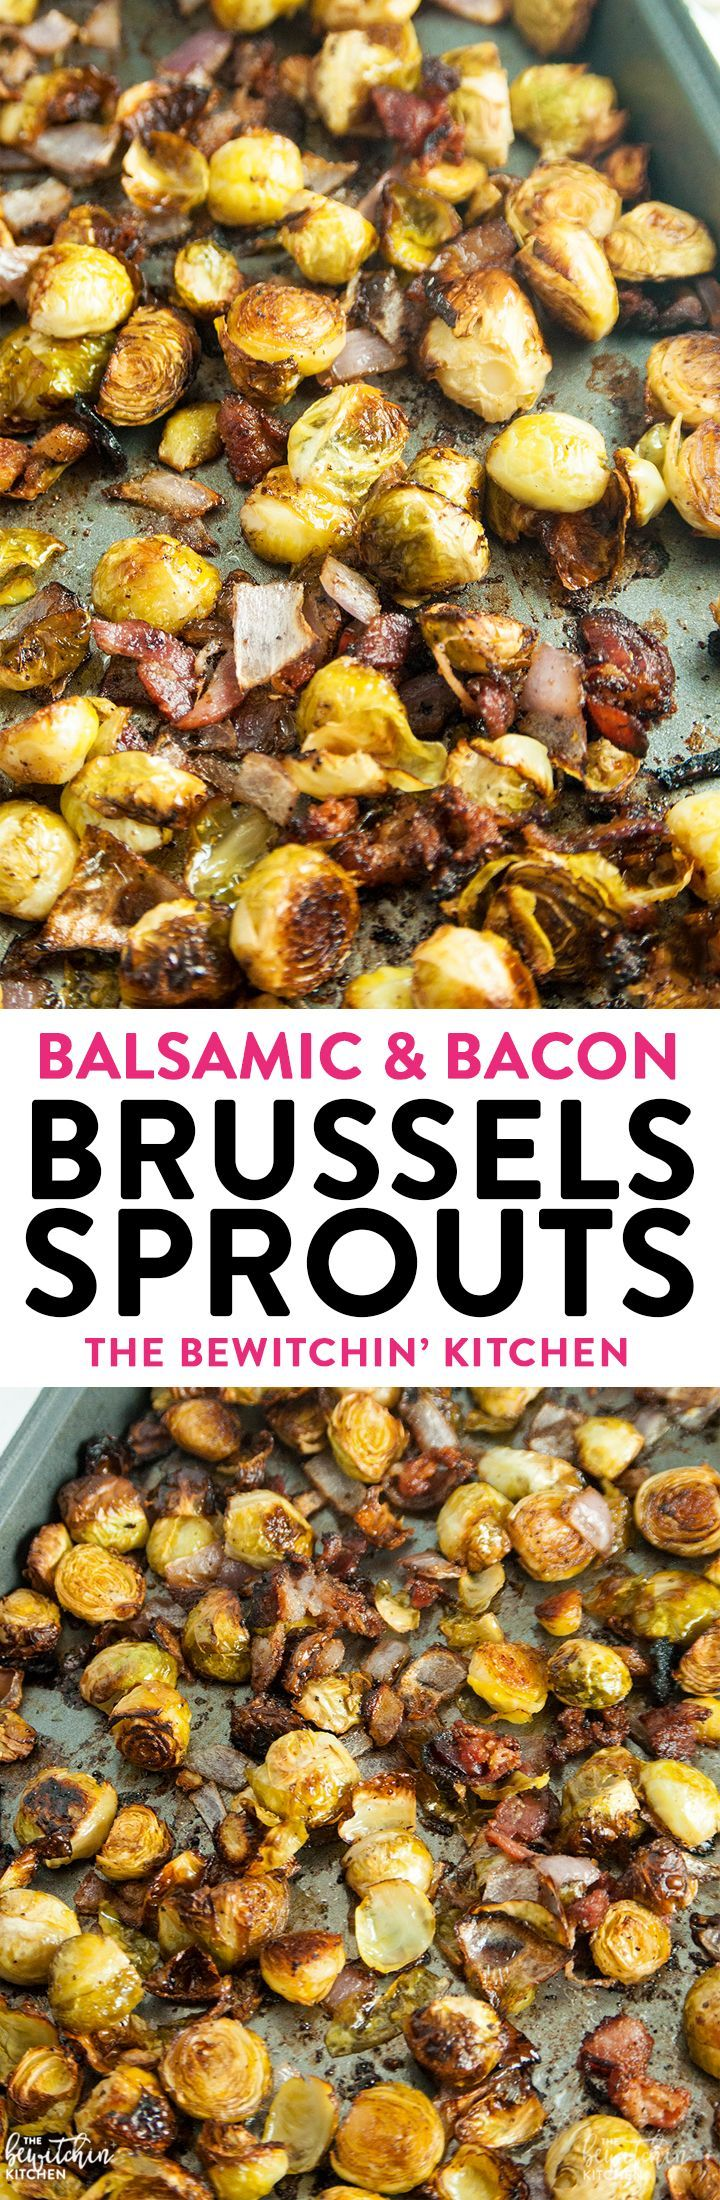 Balsamic Bacon Brussels Sprouts - this brussel sprouts healthy side dish is an easy one pan recipe that goes great with chicken, steak or Christmas dinner.  via @RandaDerkson